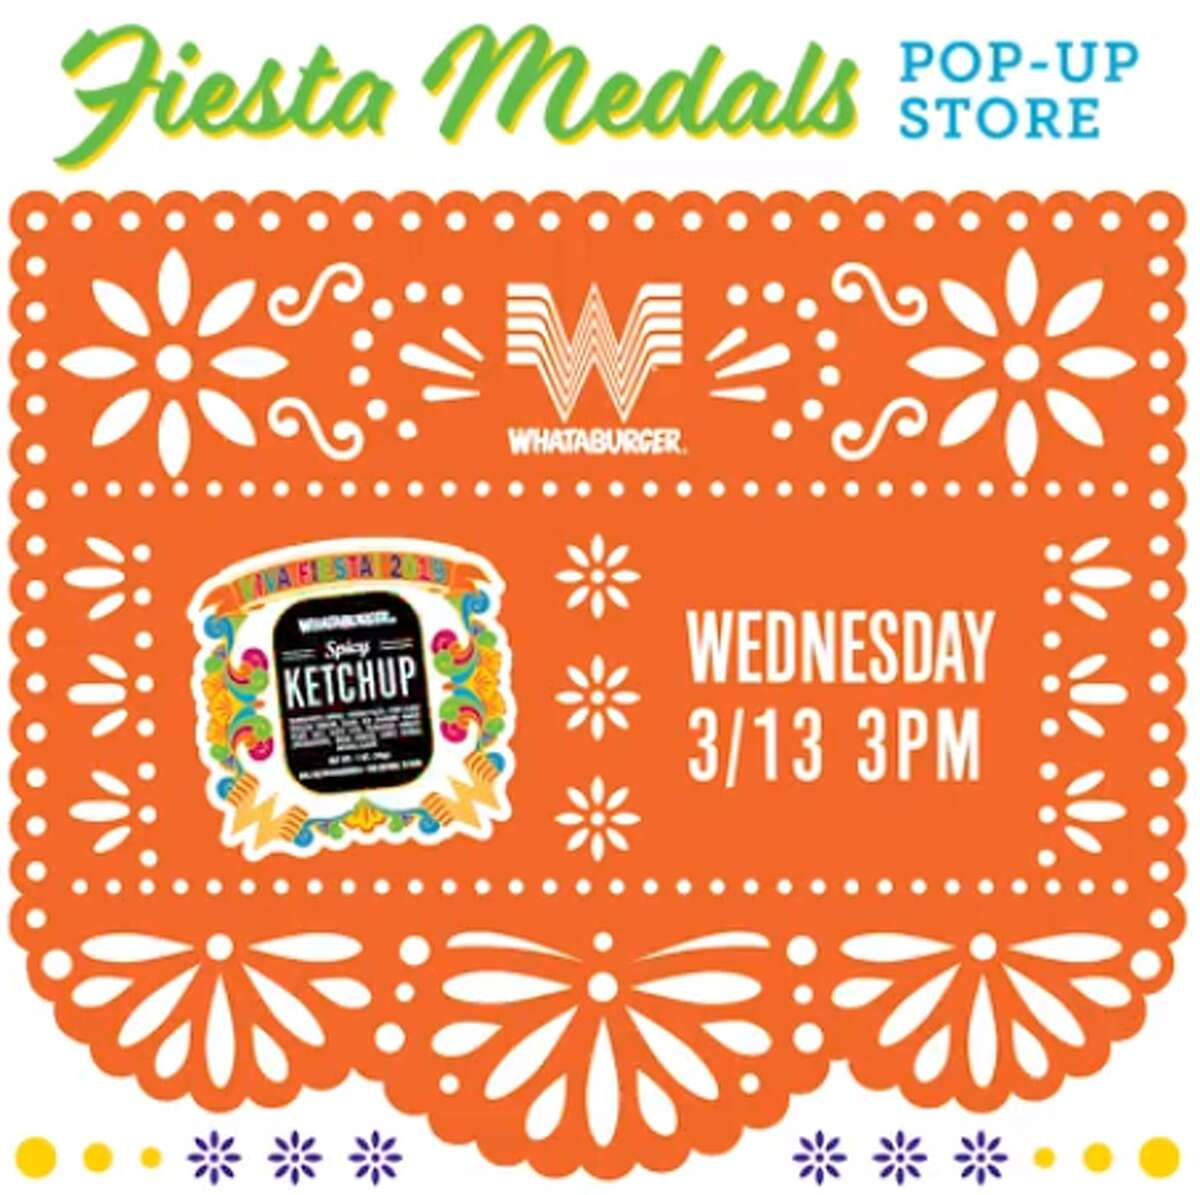 Whataburger's 2019 Fiesta medal will launch March 13 at a pop up party at the chain's downtown location before going live on the online store for $10.99.